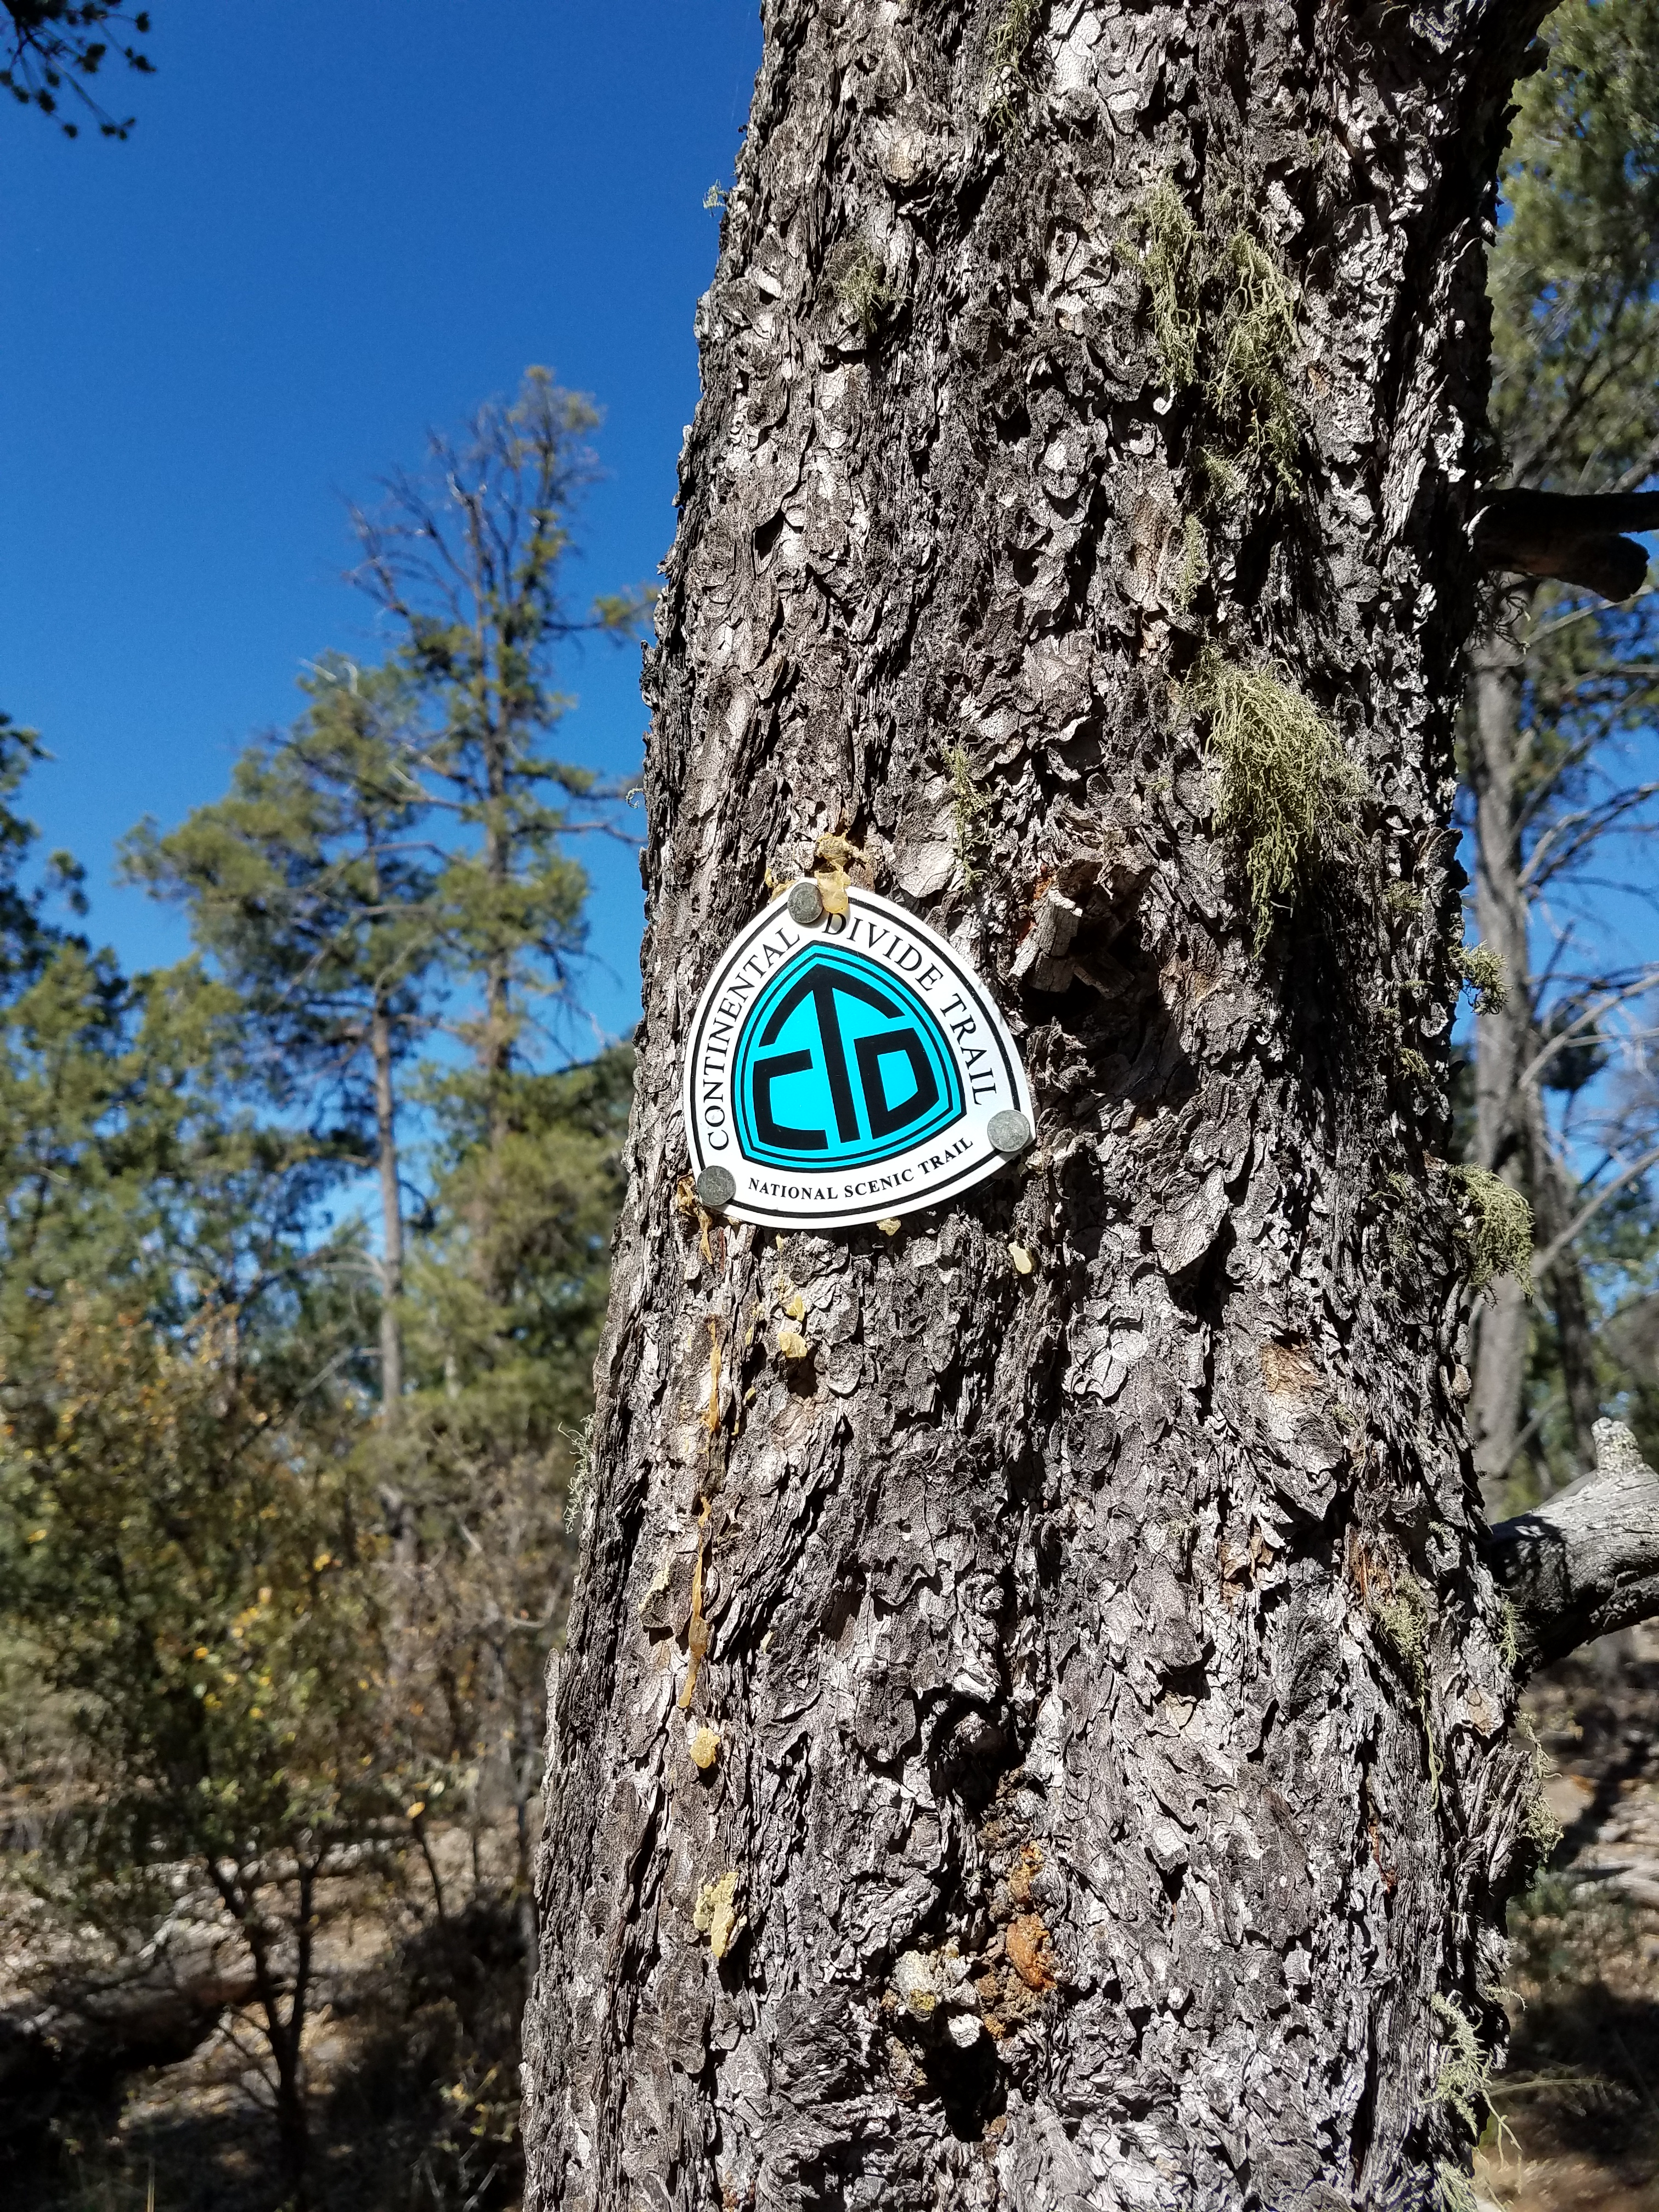 New Mexico Blue on the CD Trail